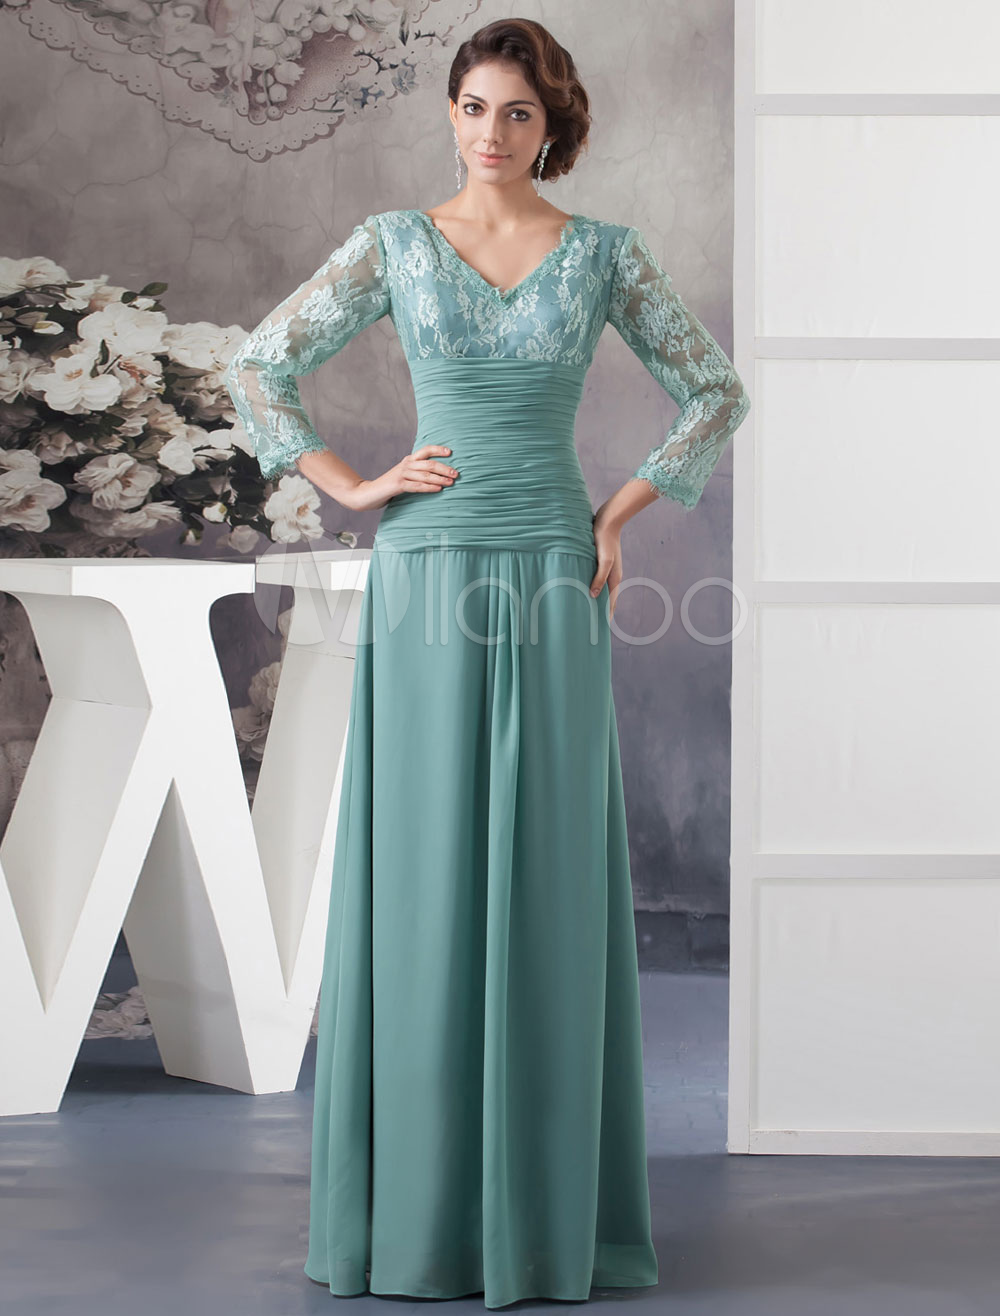 Buy Lace Mother Of The Bride Dress A-Line Floor-Length Chiffon Pleated V-Neck Long Sleeves Evening Dress Milanoo for $139.99 in Milanoo store